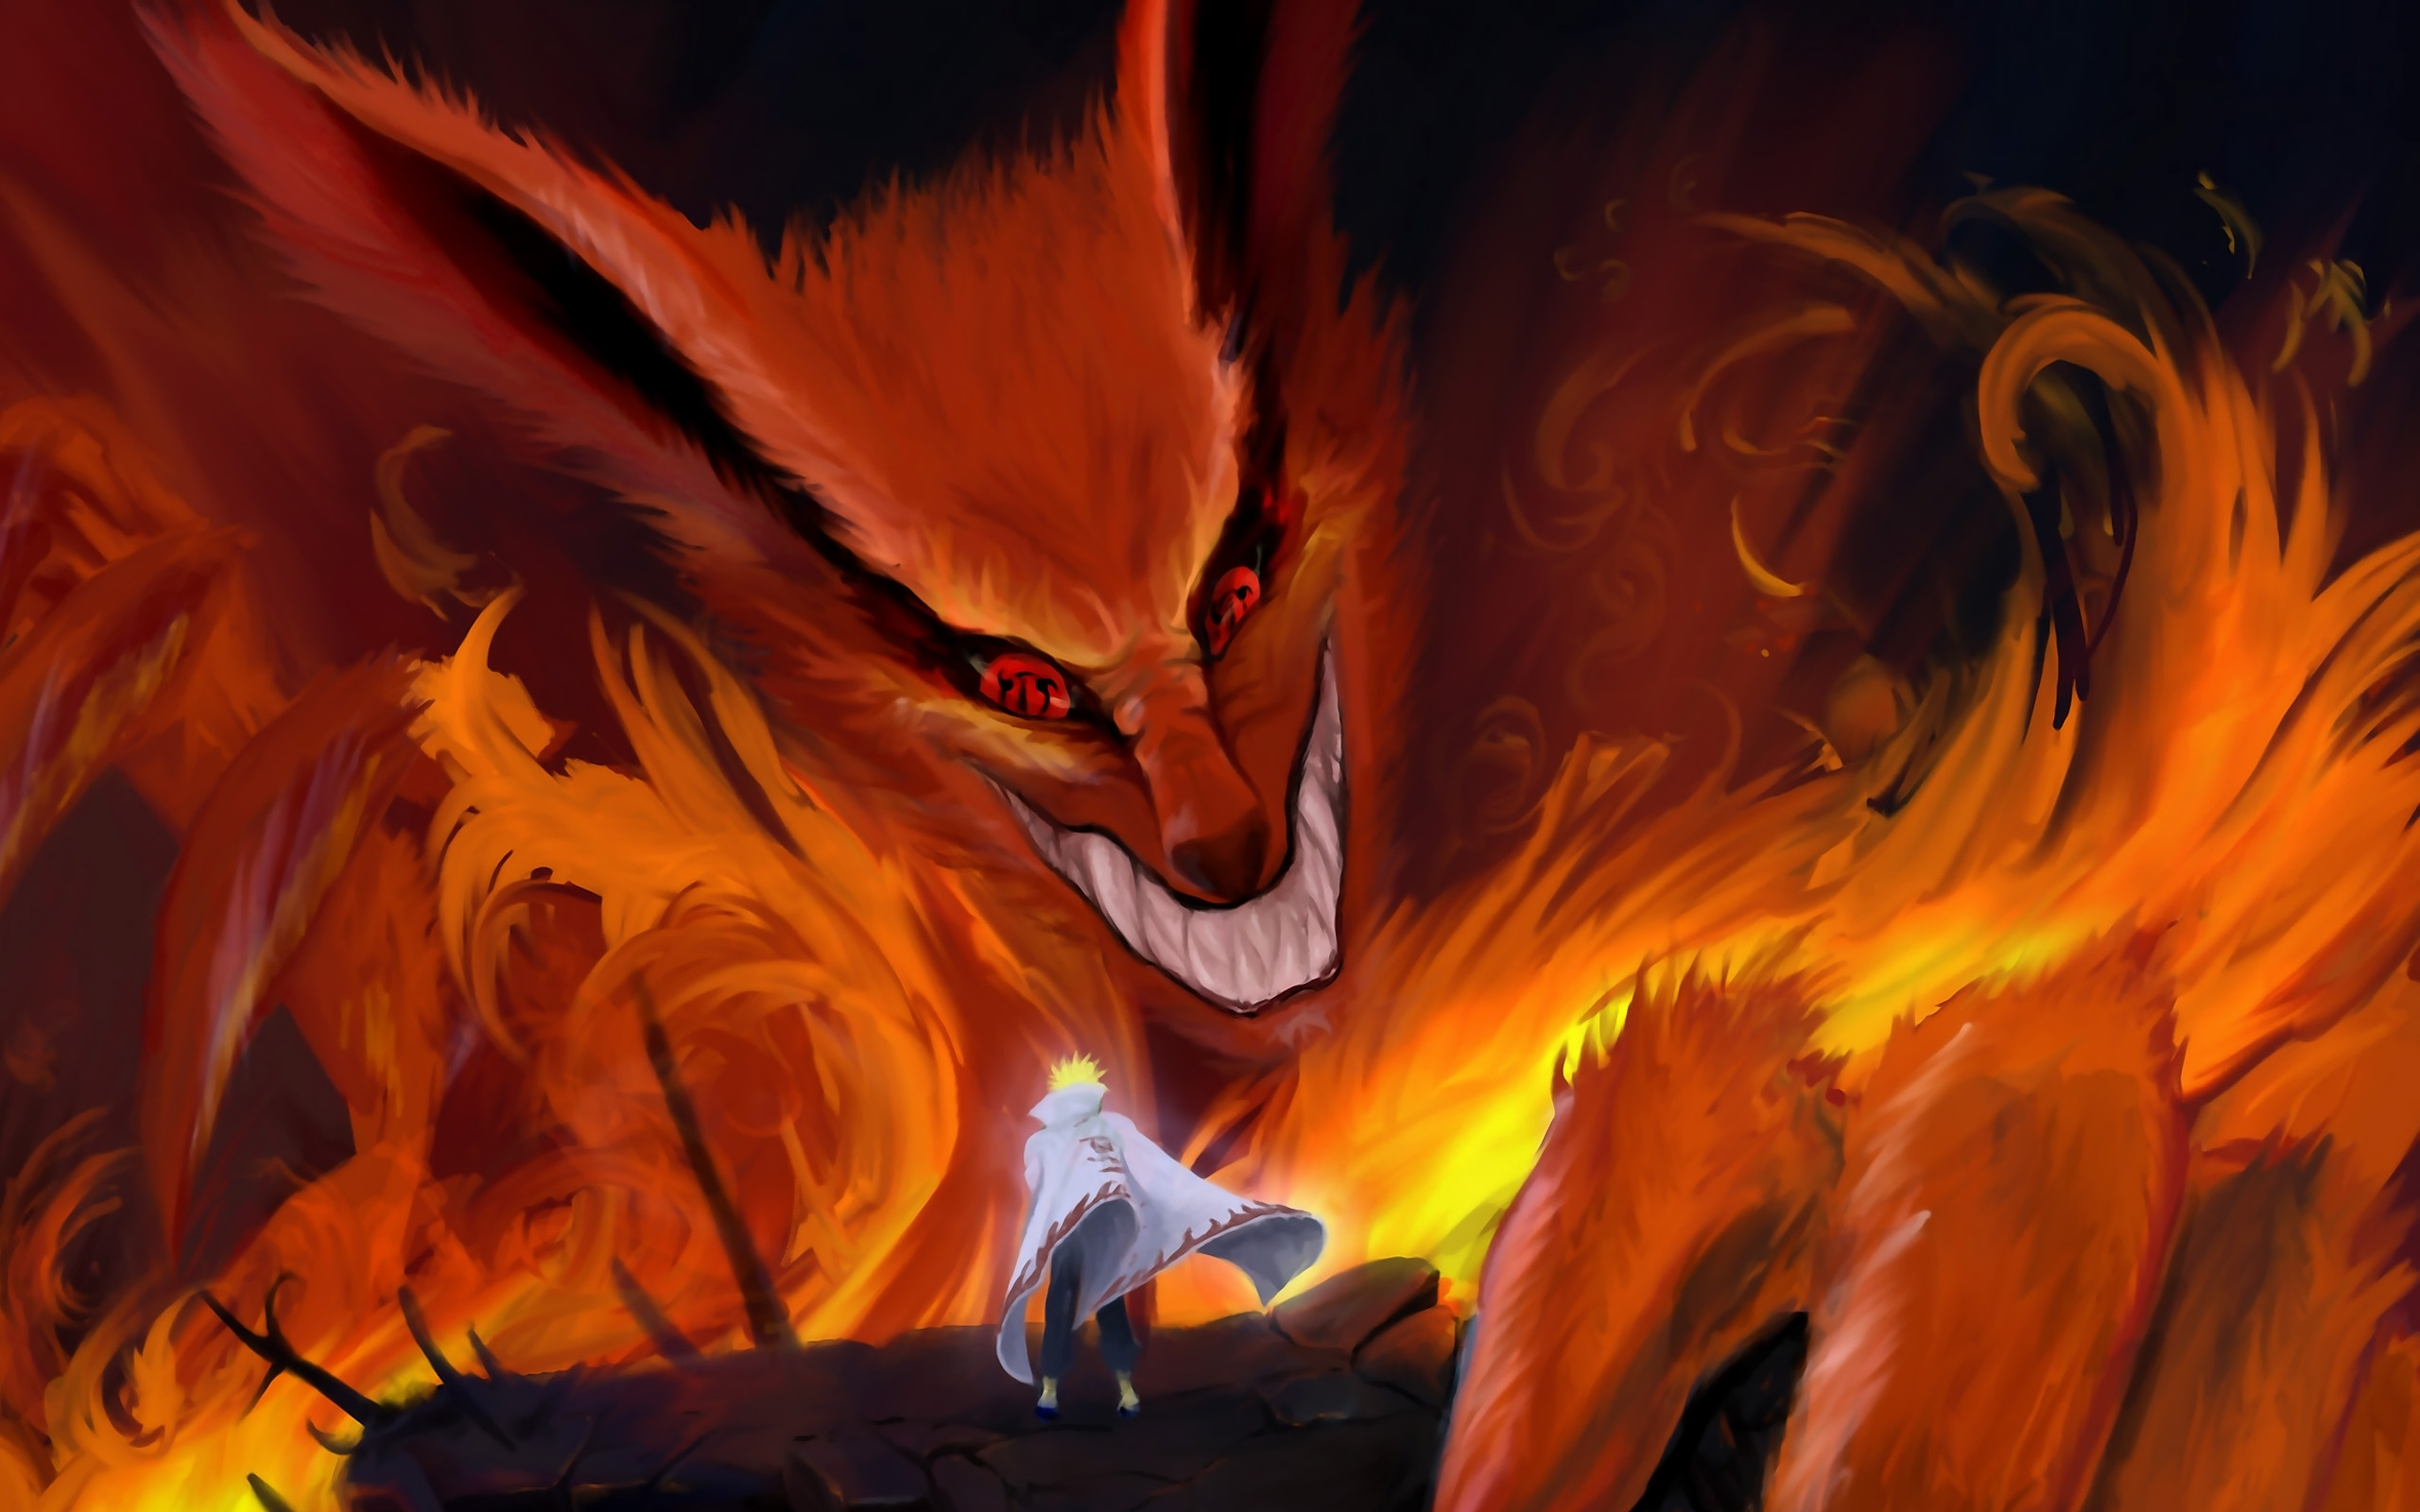 50 kurama (naruto) hd wallpapers | background images - wallpaper abyss